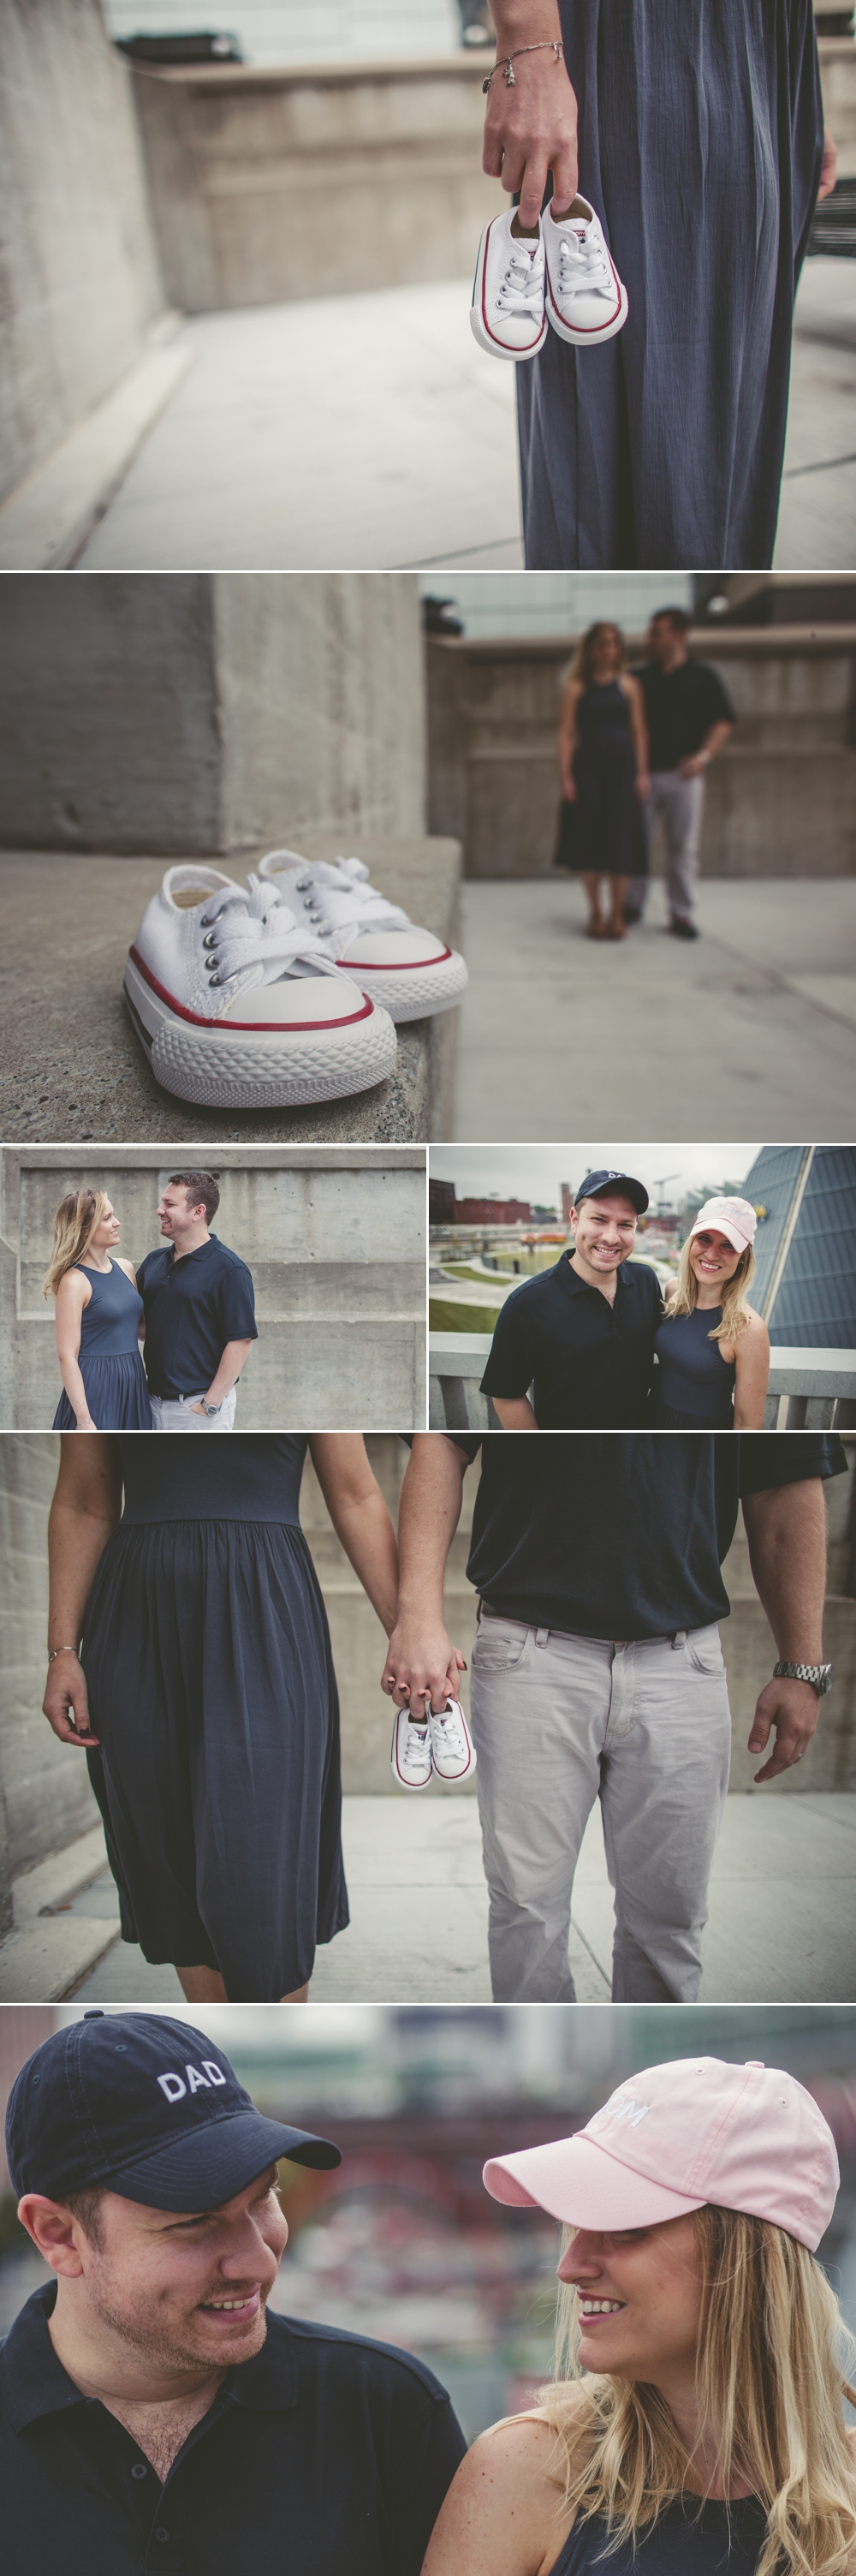 jason_domingues_photography_kansas_city_photographer_family_mini_sessions_union_station_kc_0003.JPG